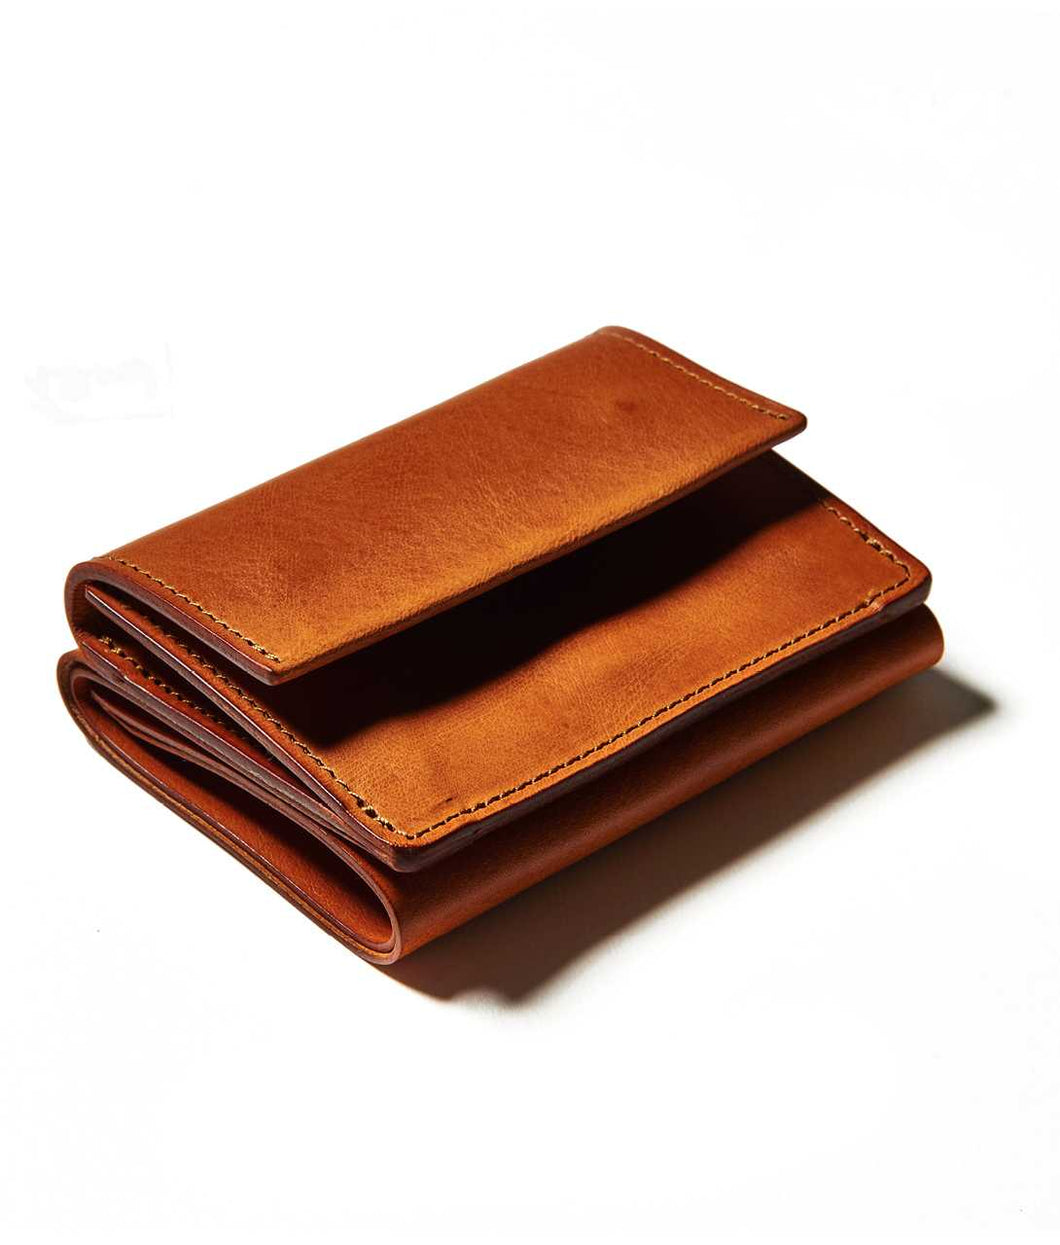 〈LIM DESIGN〉MINI WALLET / ミニウォレット(BROWN)